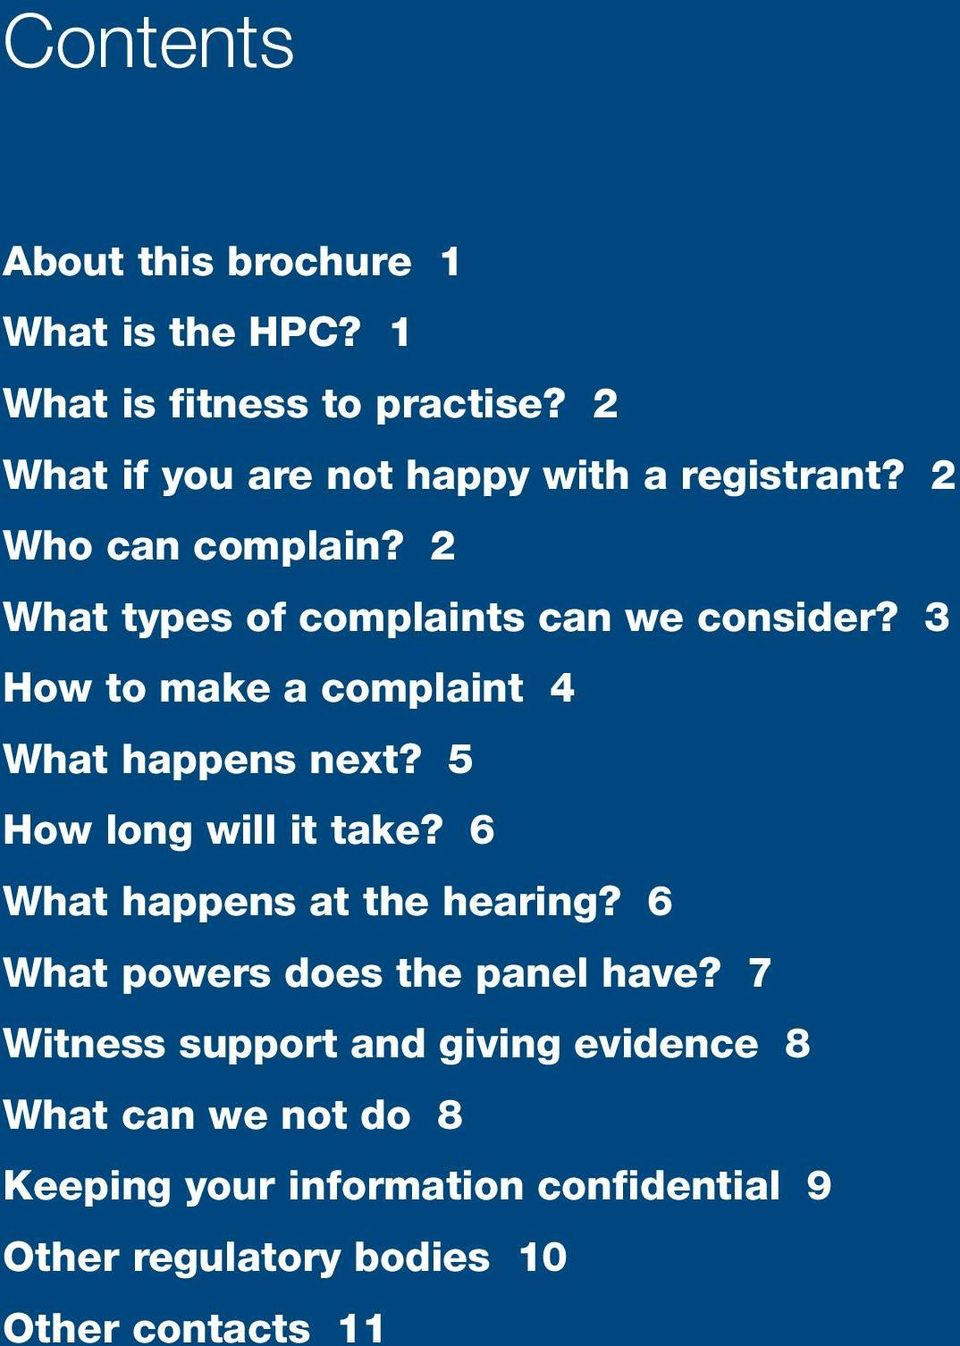 3 How to make a complaint 4 What happens next? 5 How long will it take? 6 What happens at the hearing?